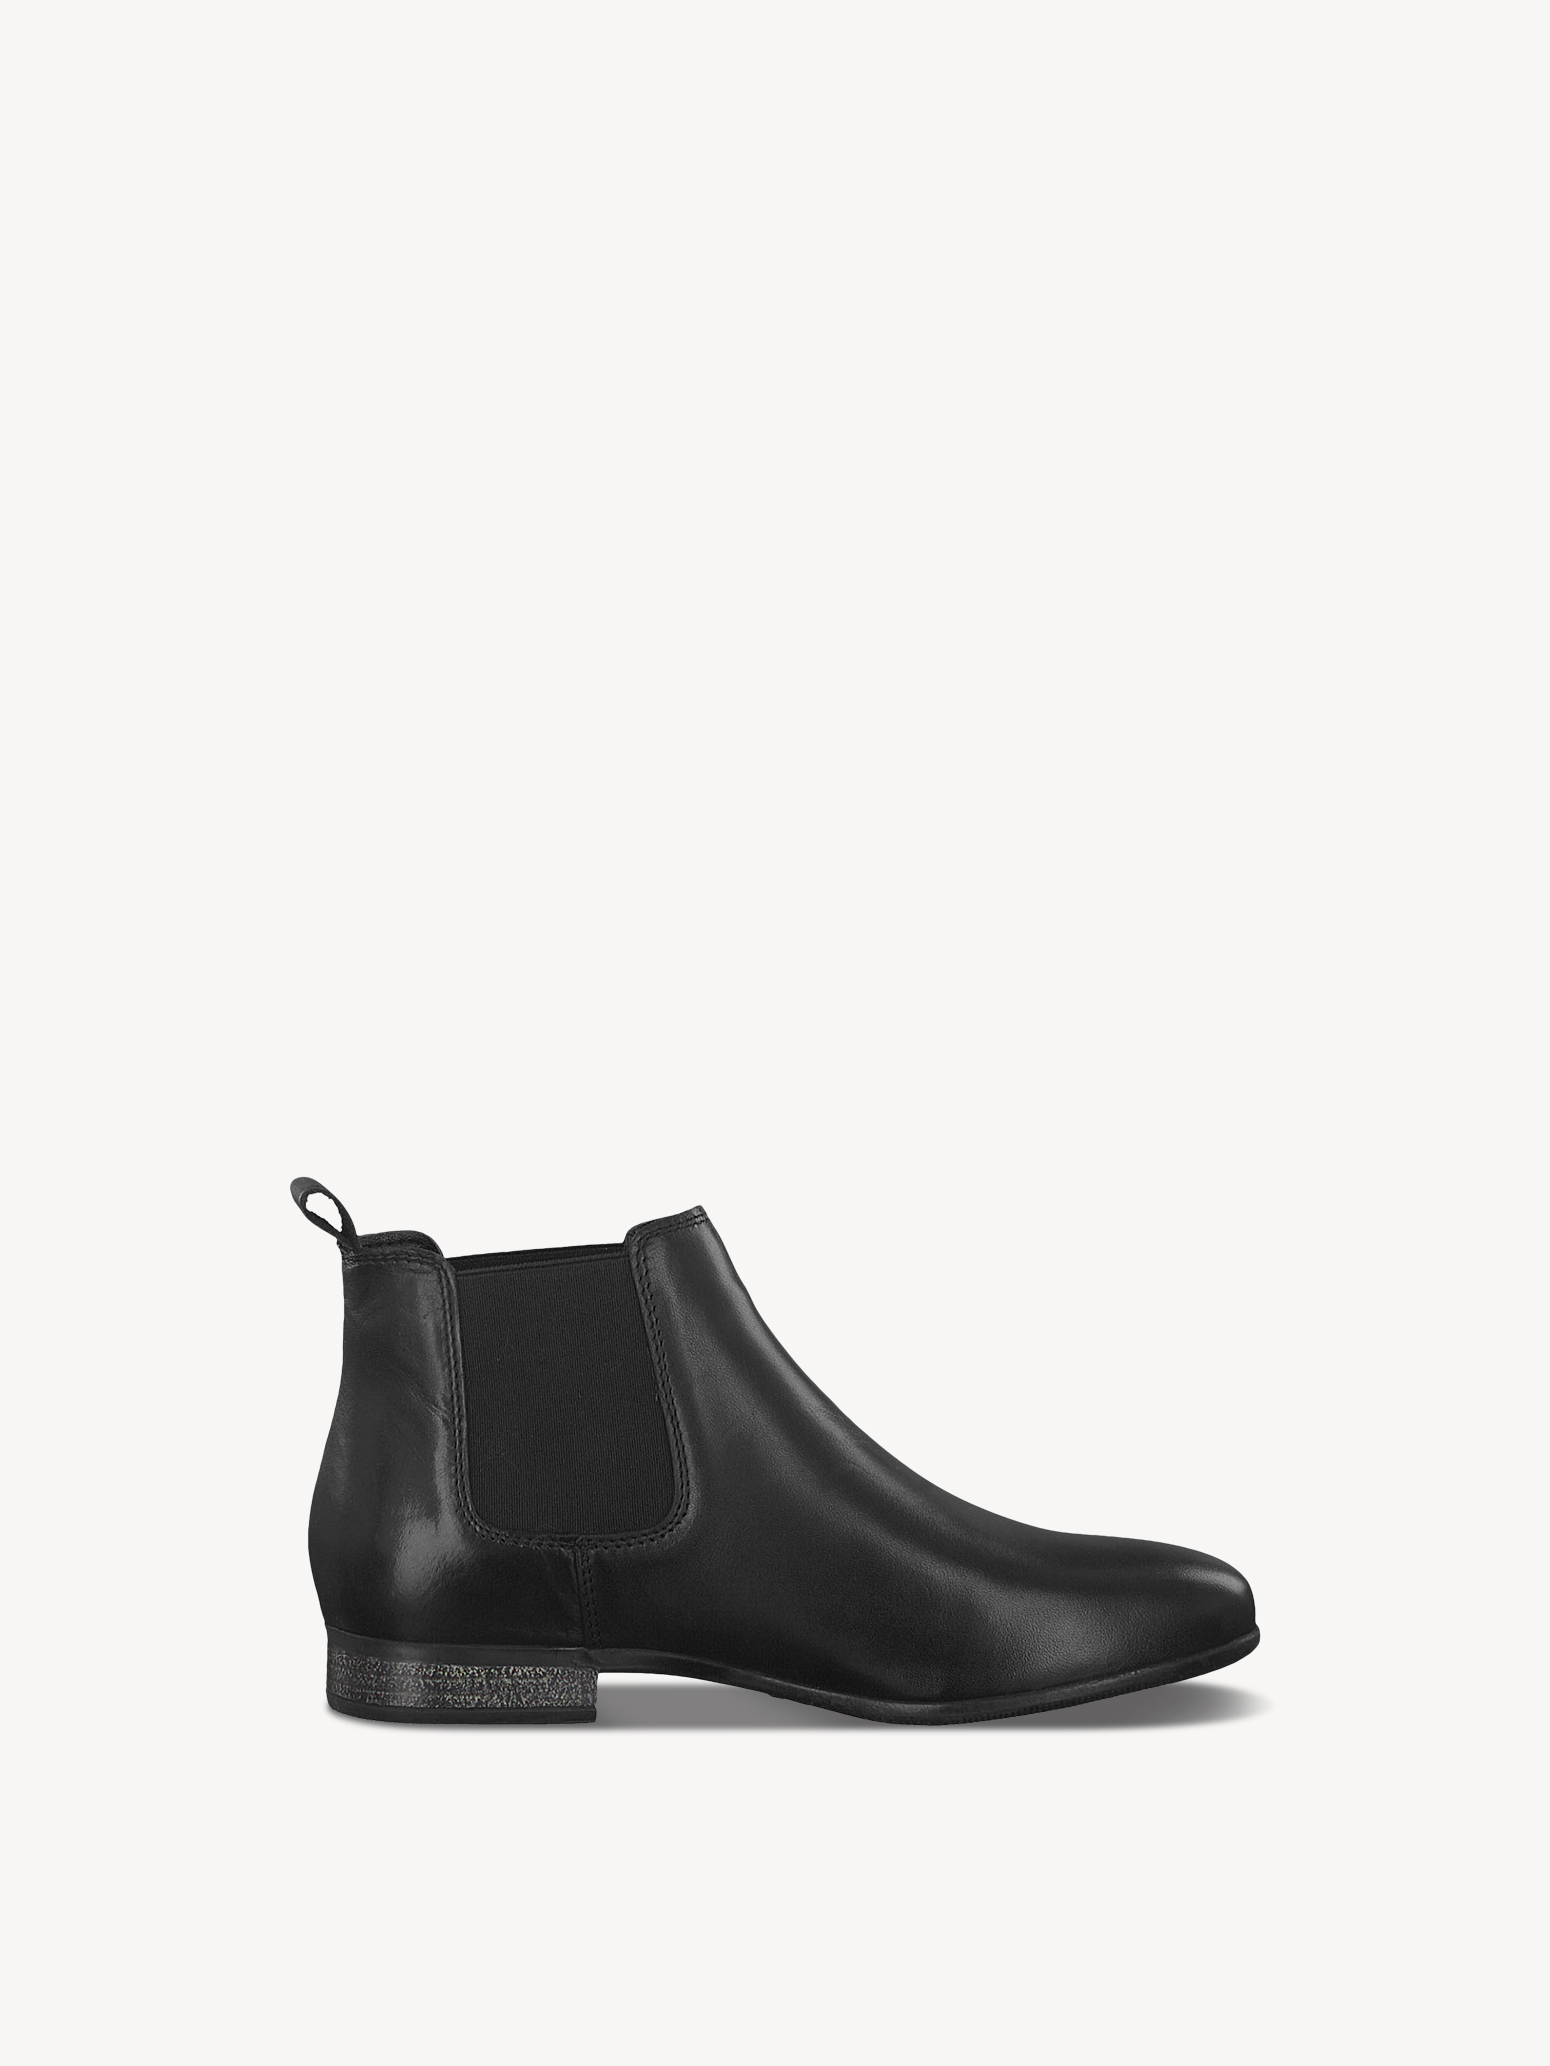 Leather Chelsea boot - black, BLACK, hi-res